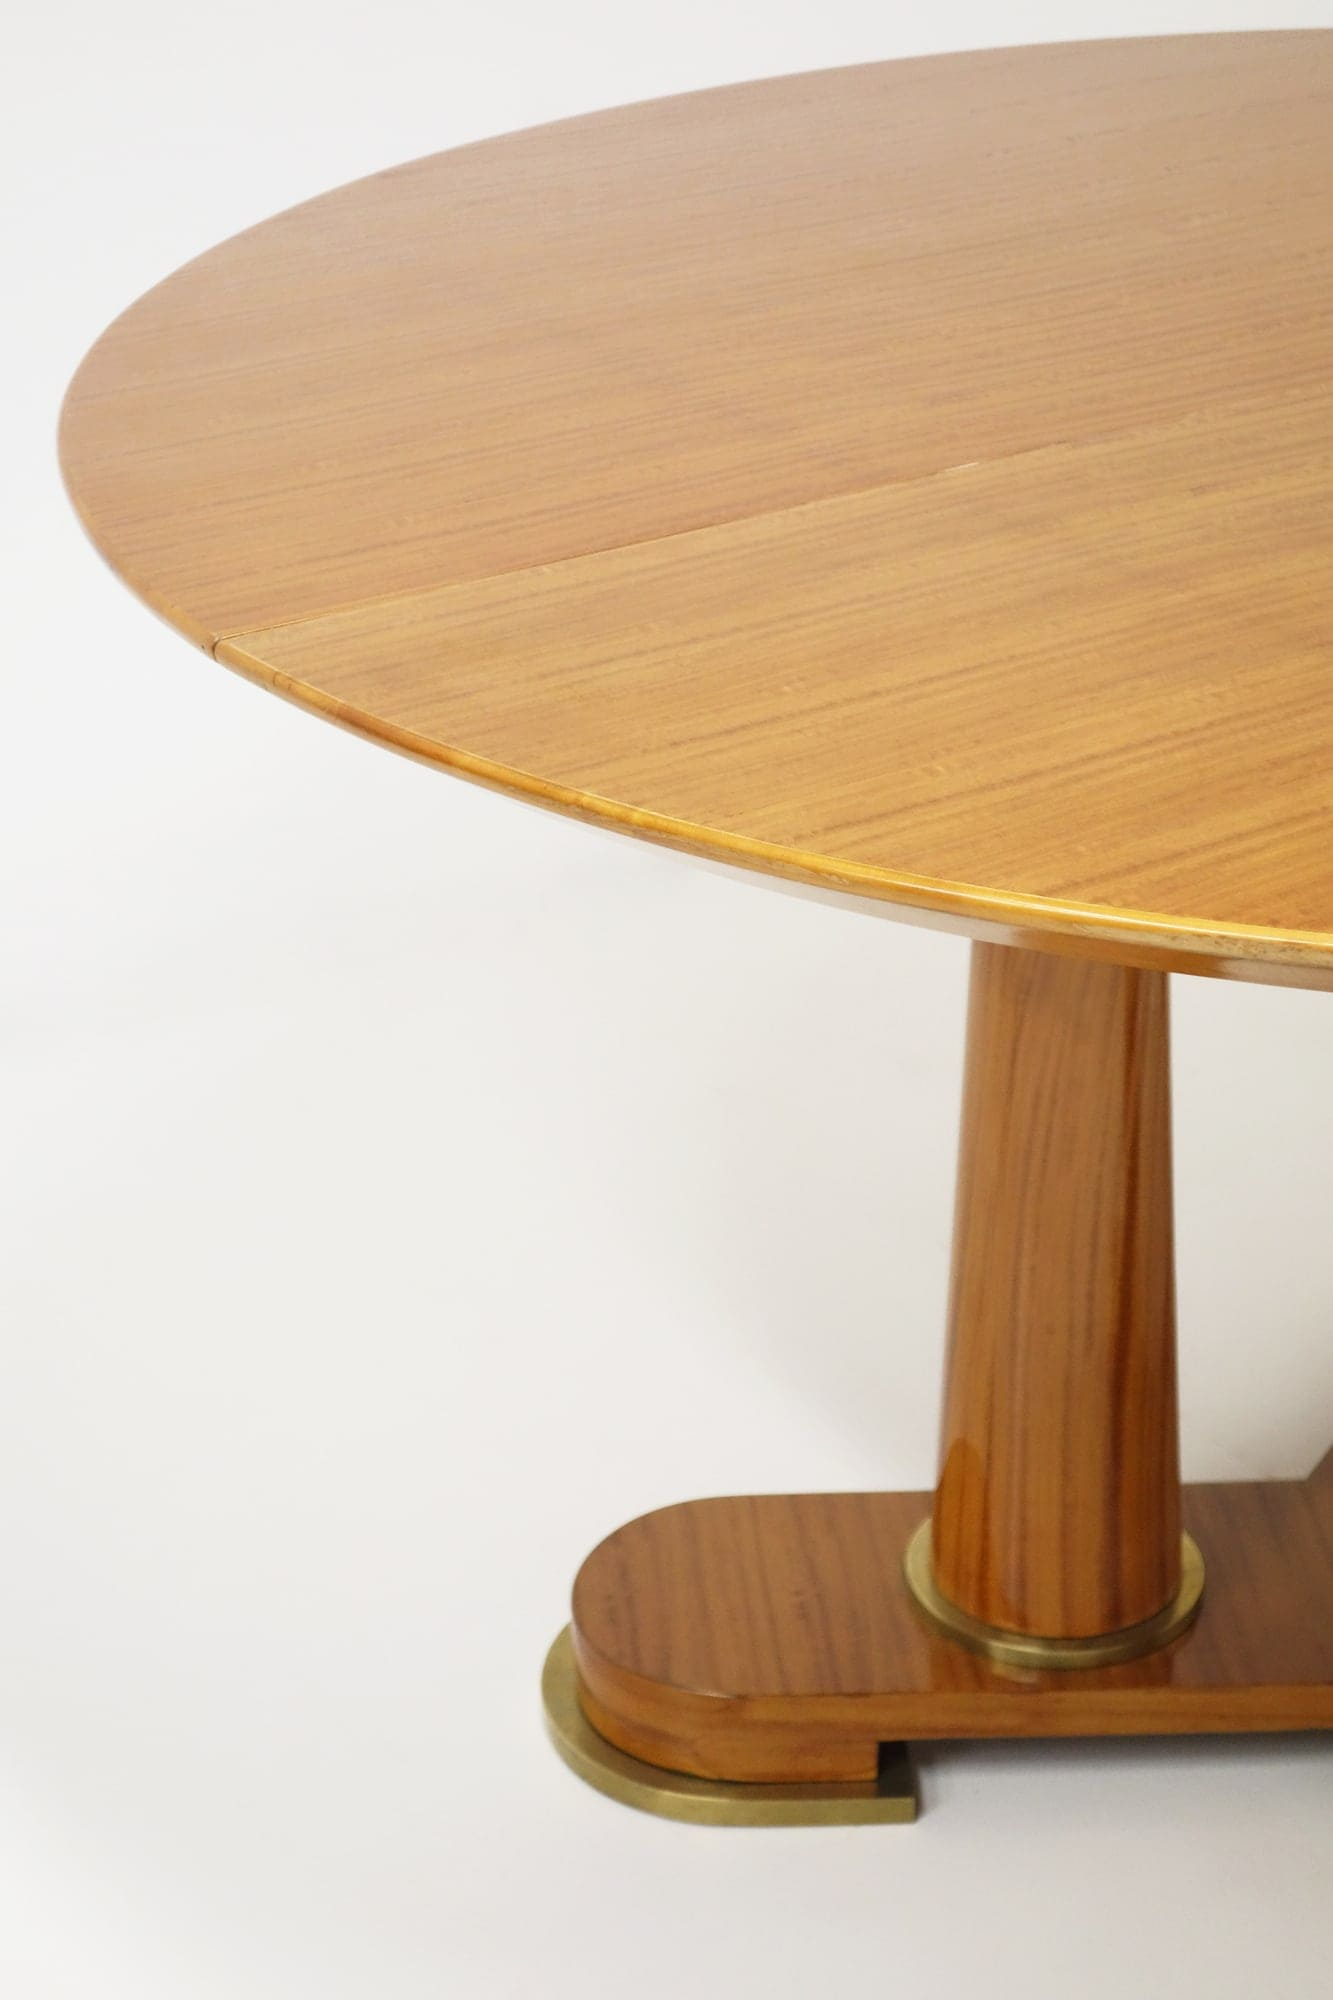 Jean Royère, Lemon-tree table, vue 04